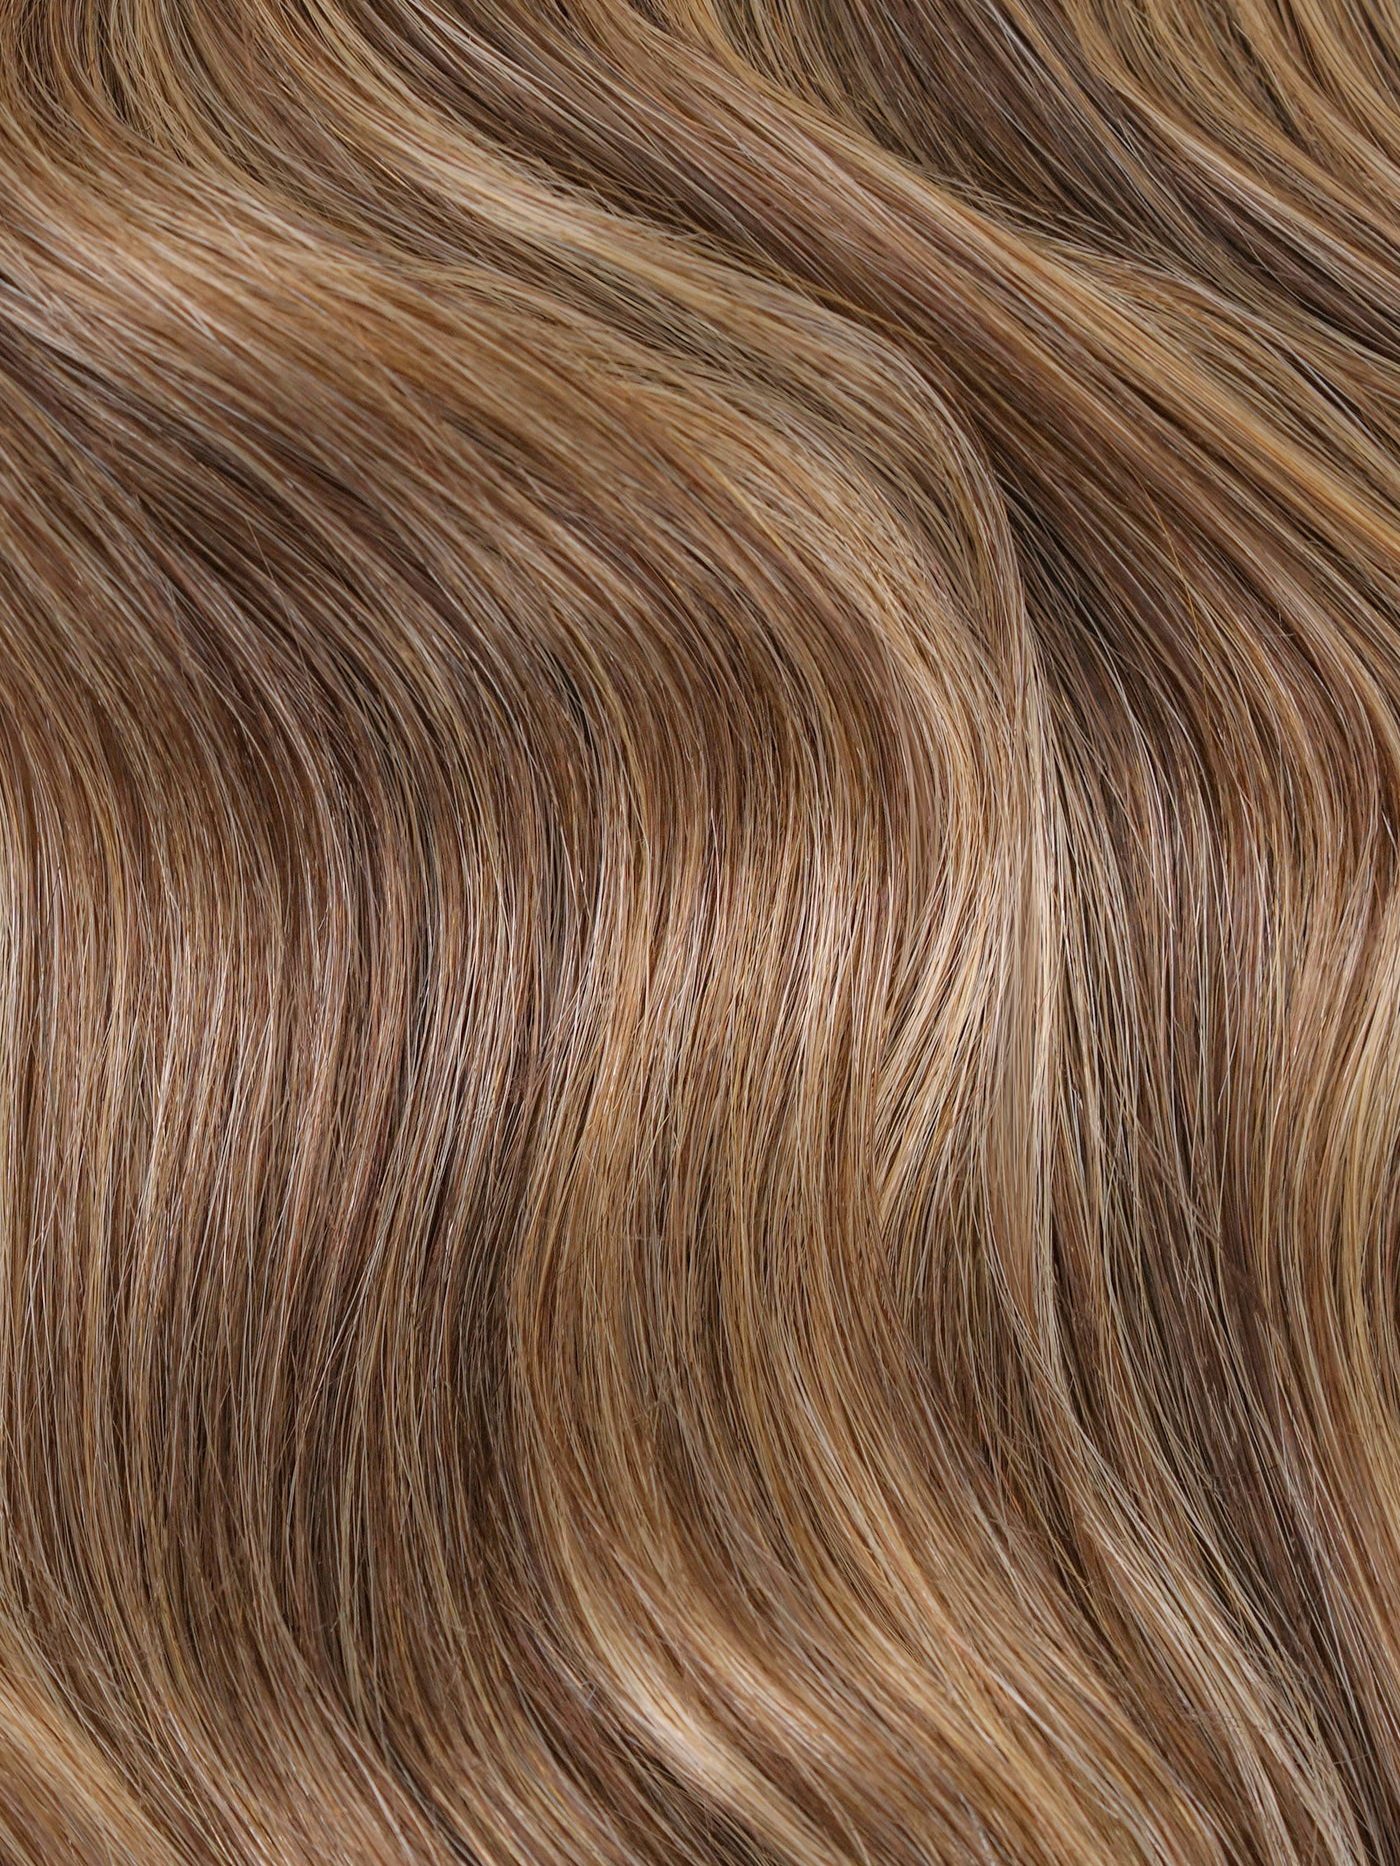 Chestnut Latte Highlights #640 - A blended combination of a toned down warm brown and golden blonde mesh together to create more depth and dimension.